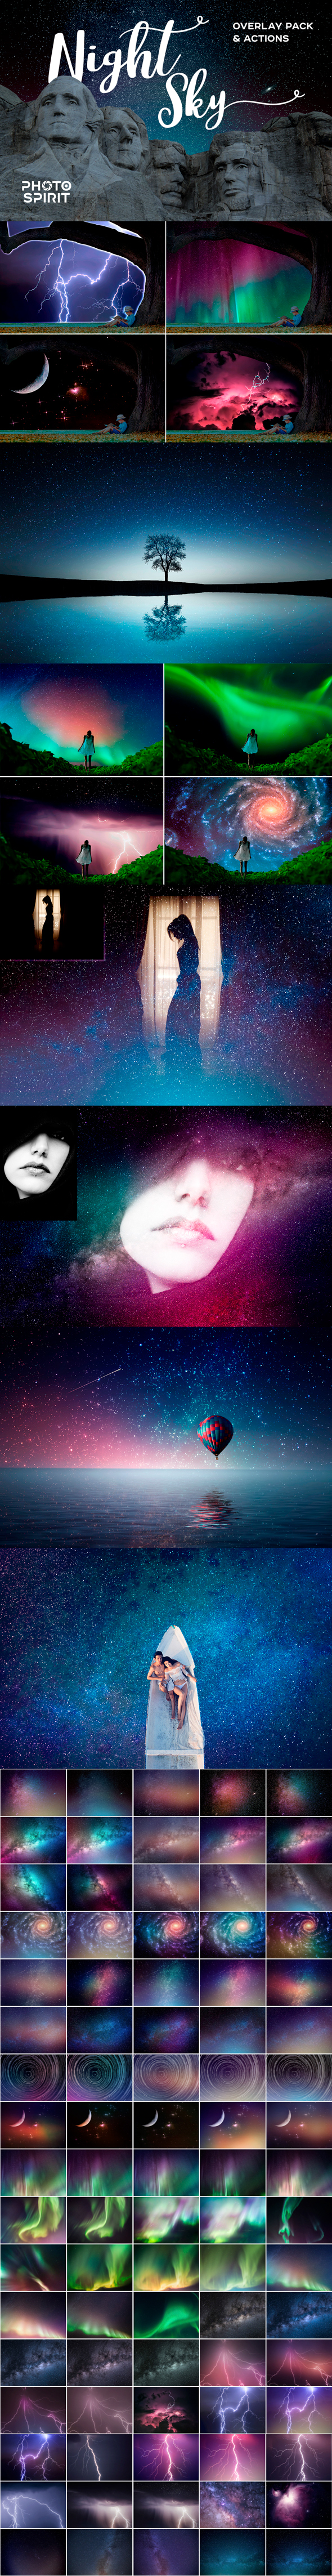 Night Sky Background Overlays - Photo Effects Actions